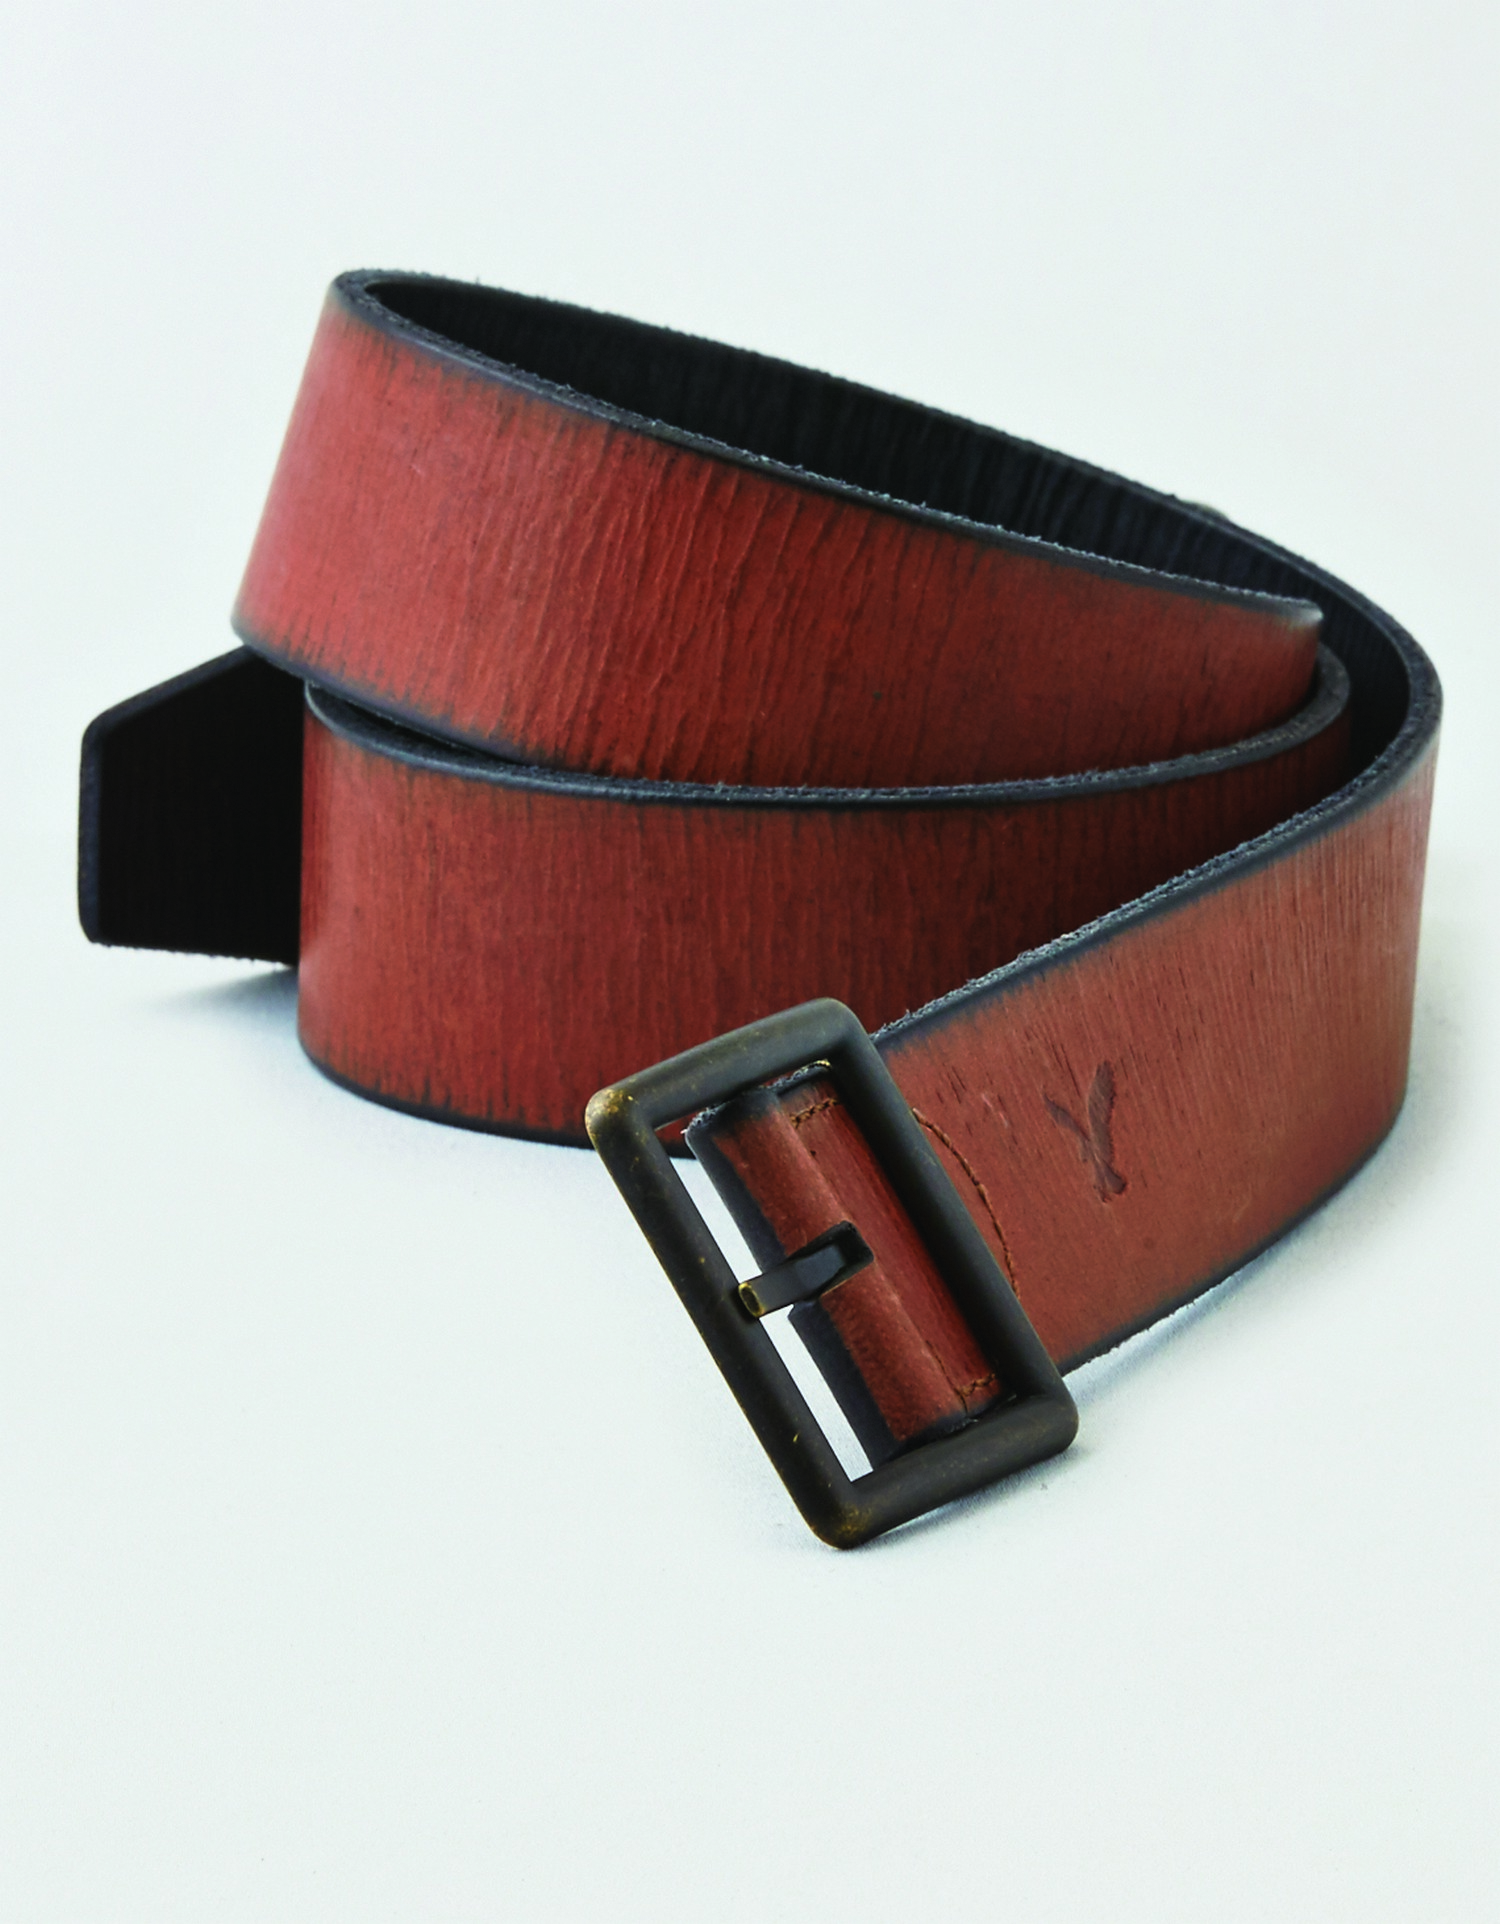 AE - M - Accessories - SQUARE BUCKLE REVERSIBLE - Brown leather belt - Dirty square brass buckle - black underside BG *Tracked